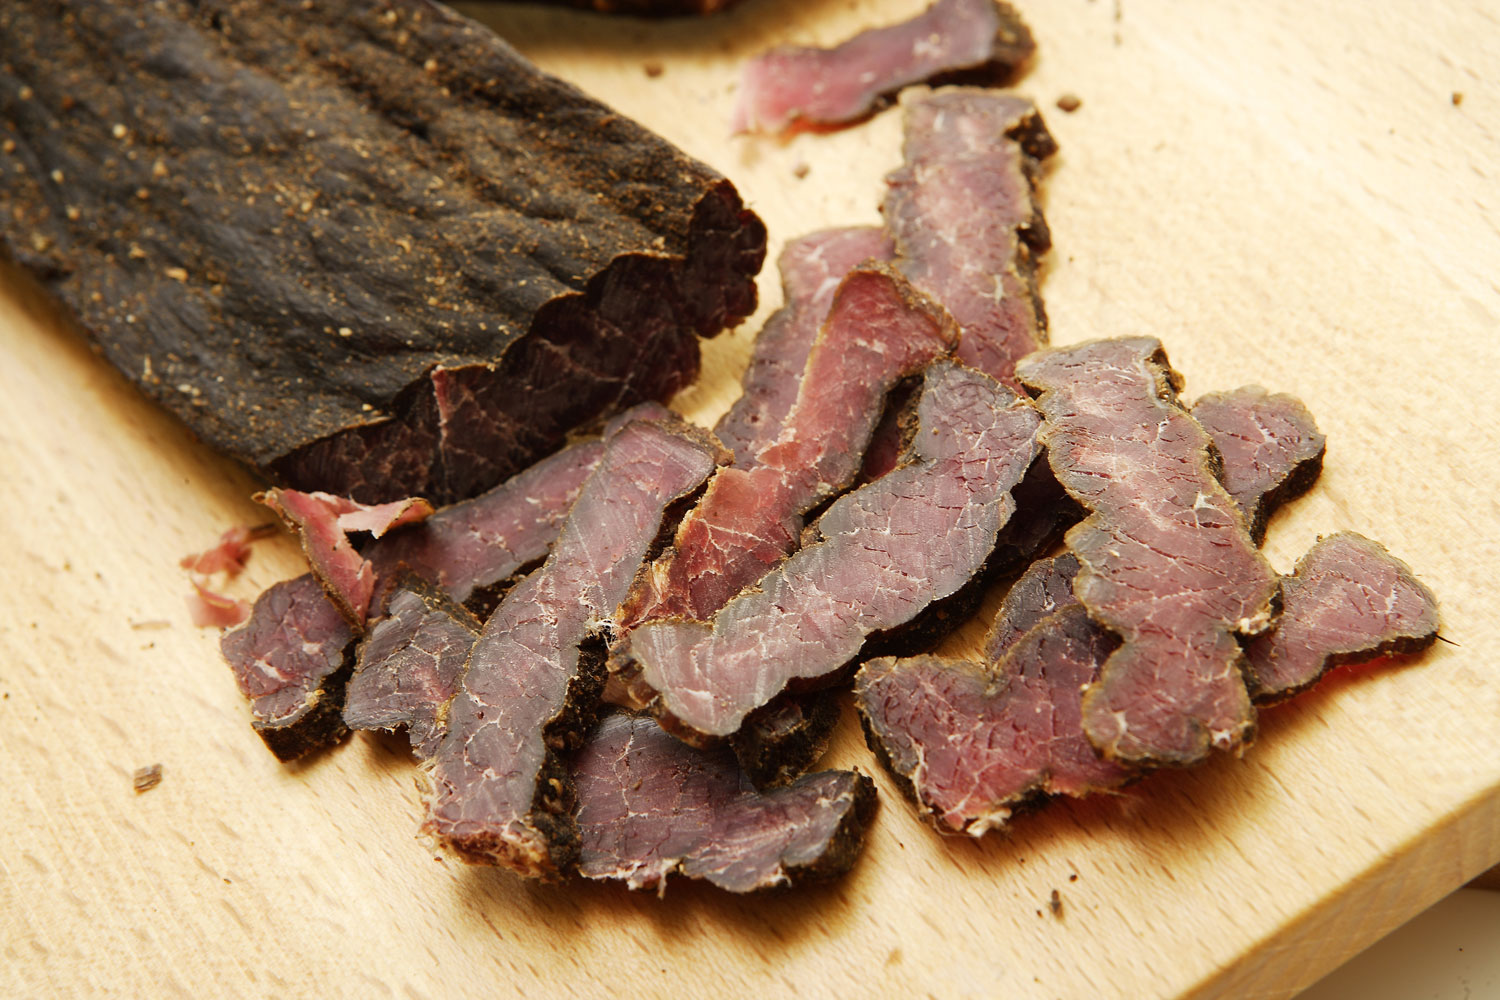 Savoury Strips of Biltong